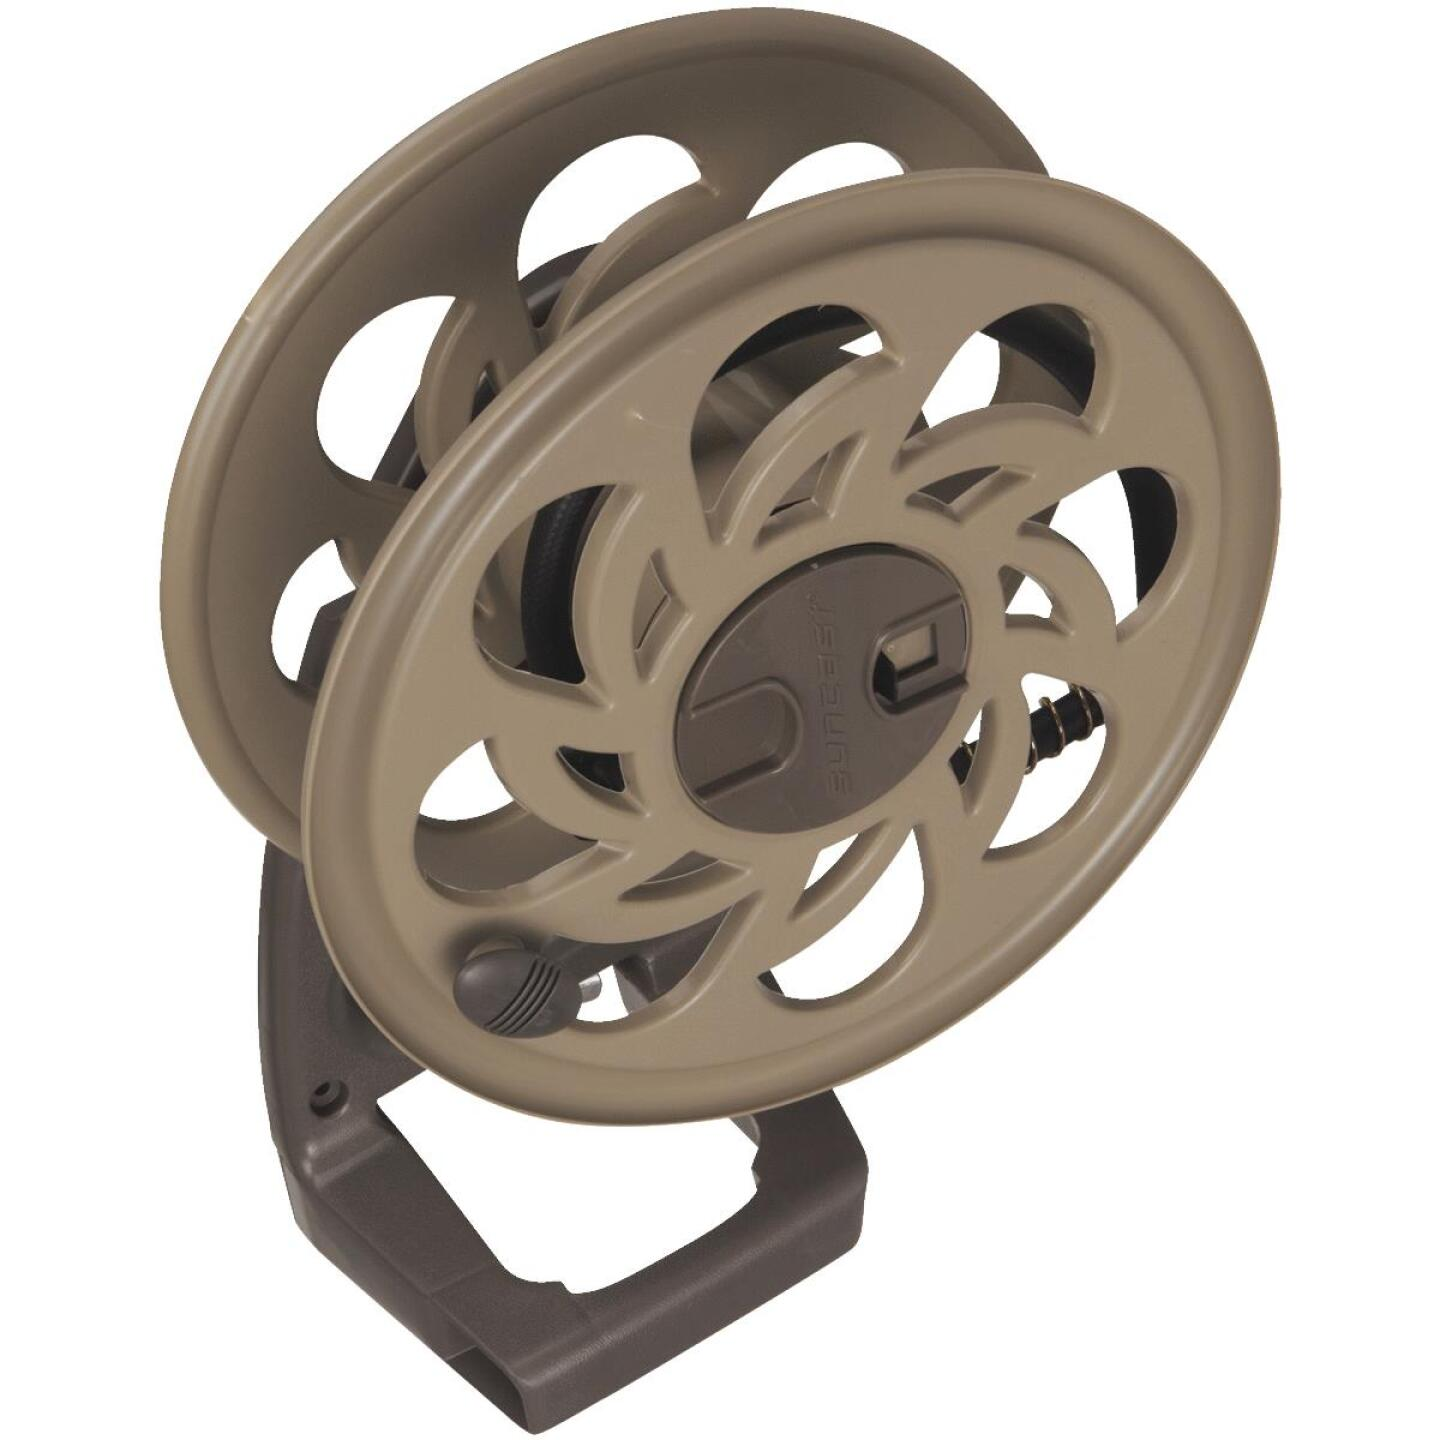 Suncast Sidetracker 125 Ft. x 5/8 In. Taupe Resin Hose Reel Image 1